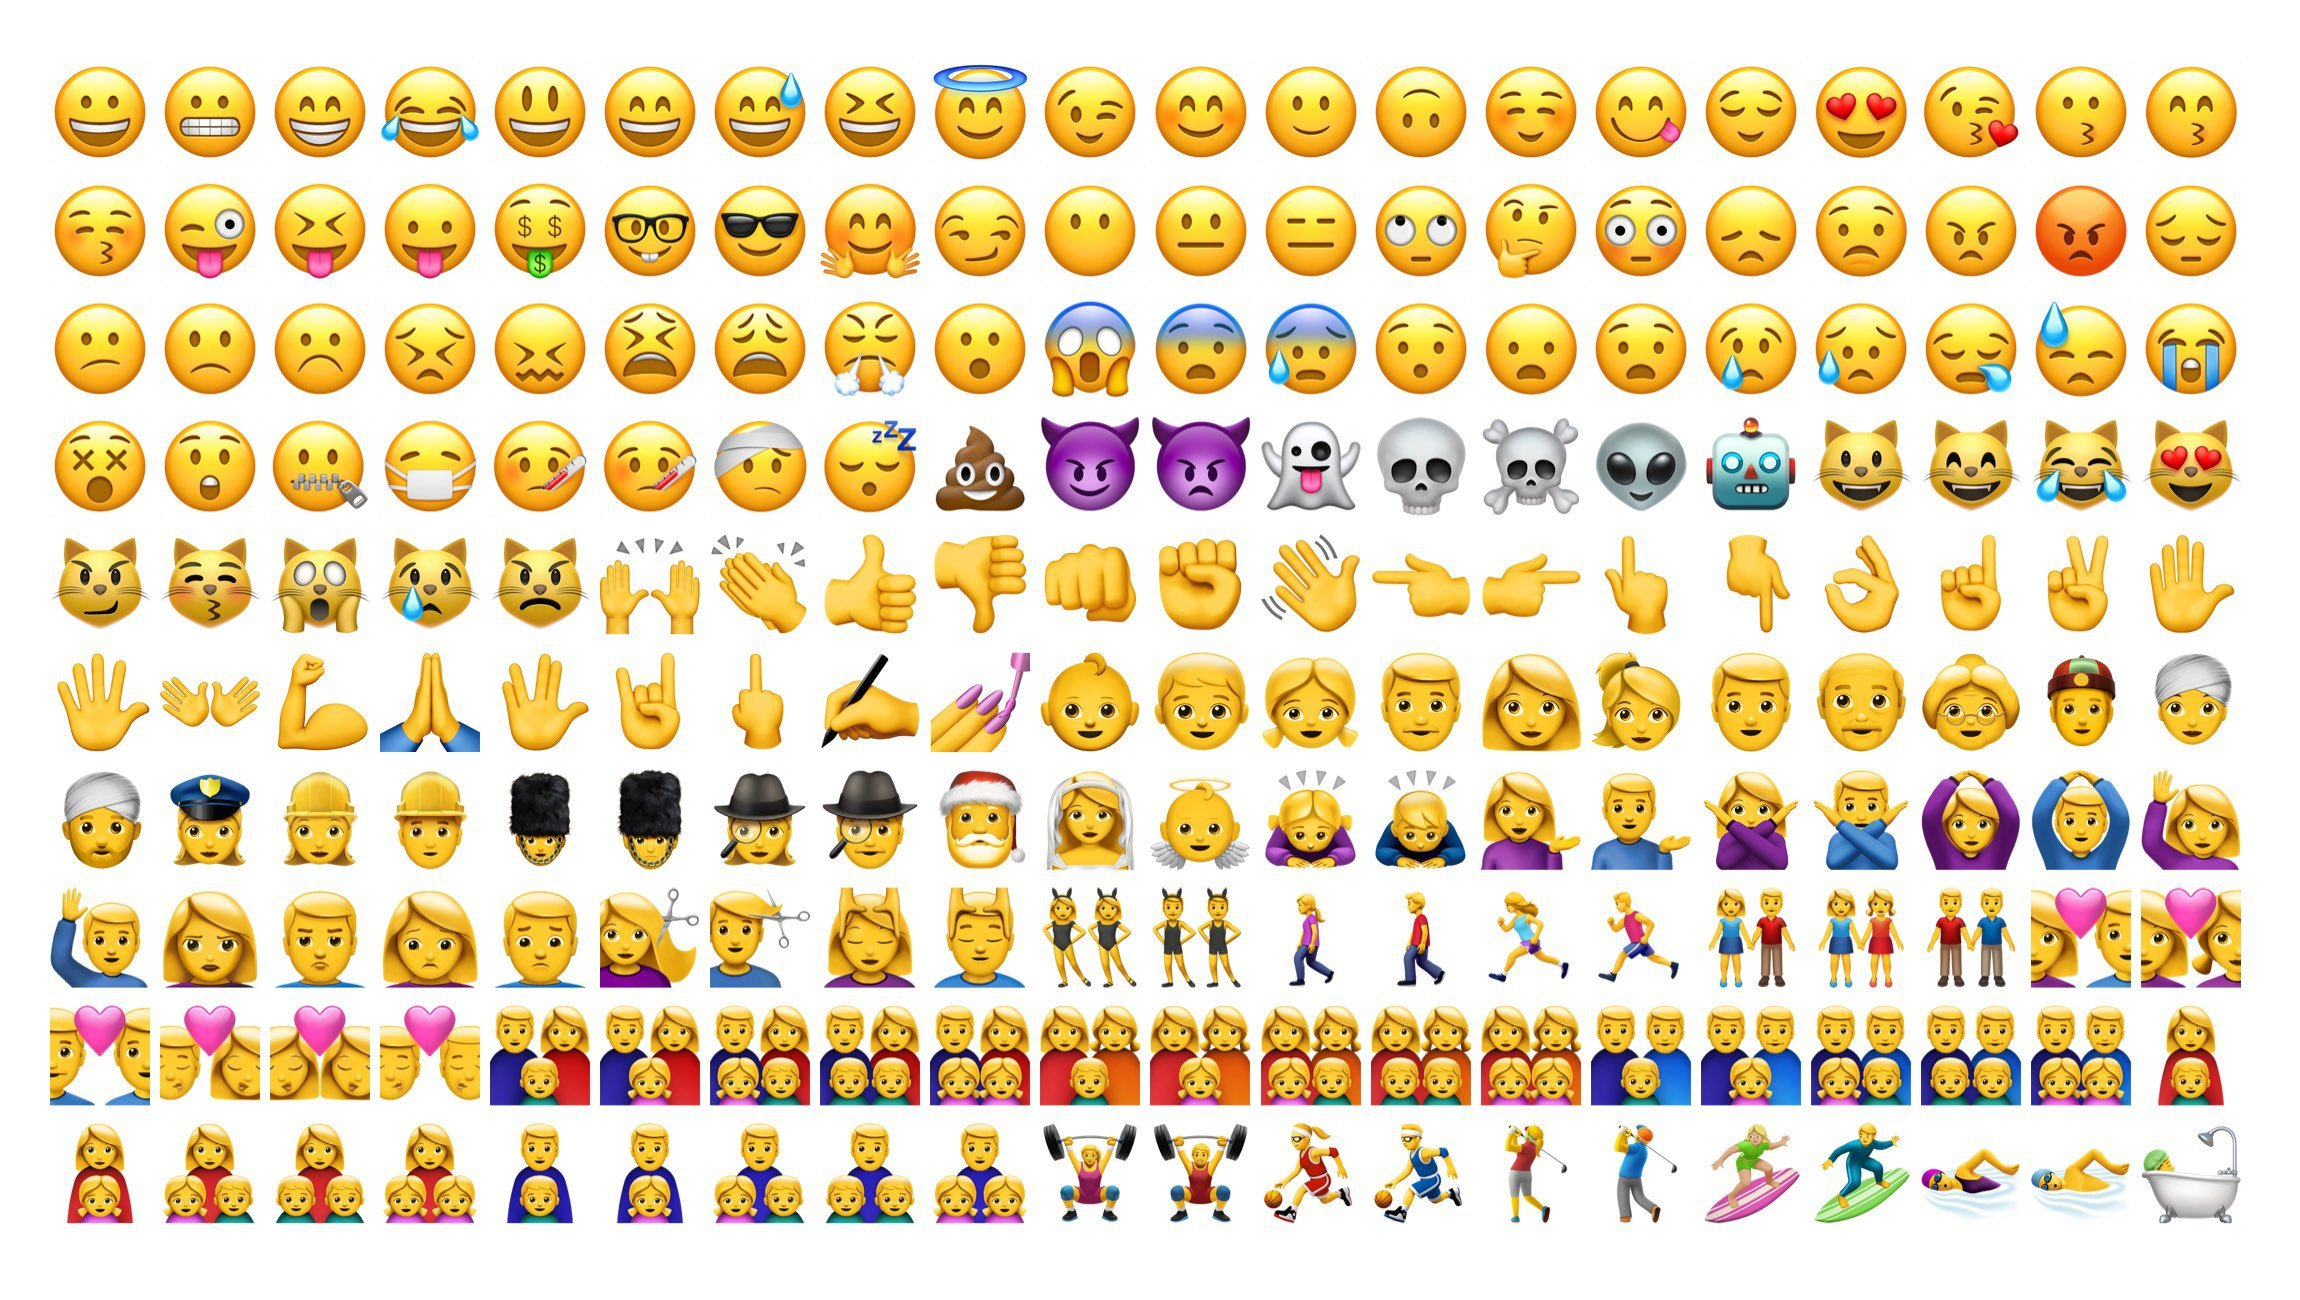 Here are some of the emoji that look different in iOS 10.